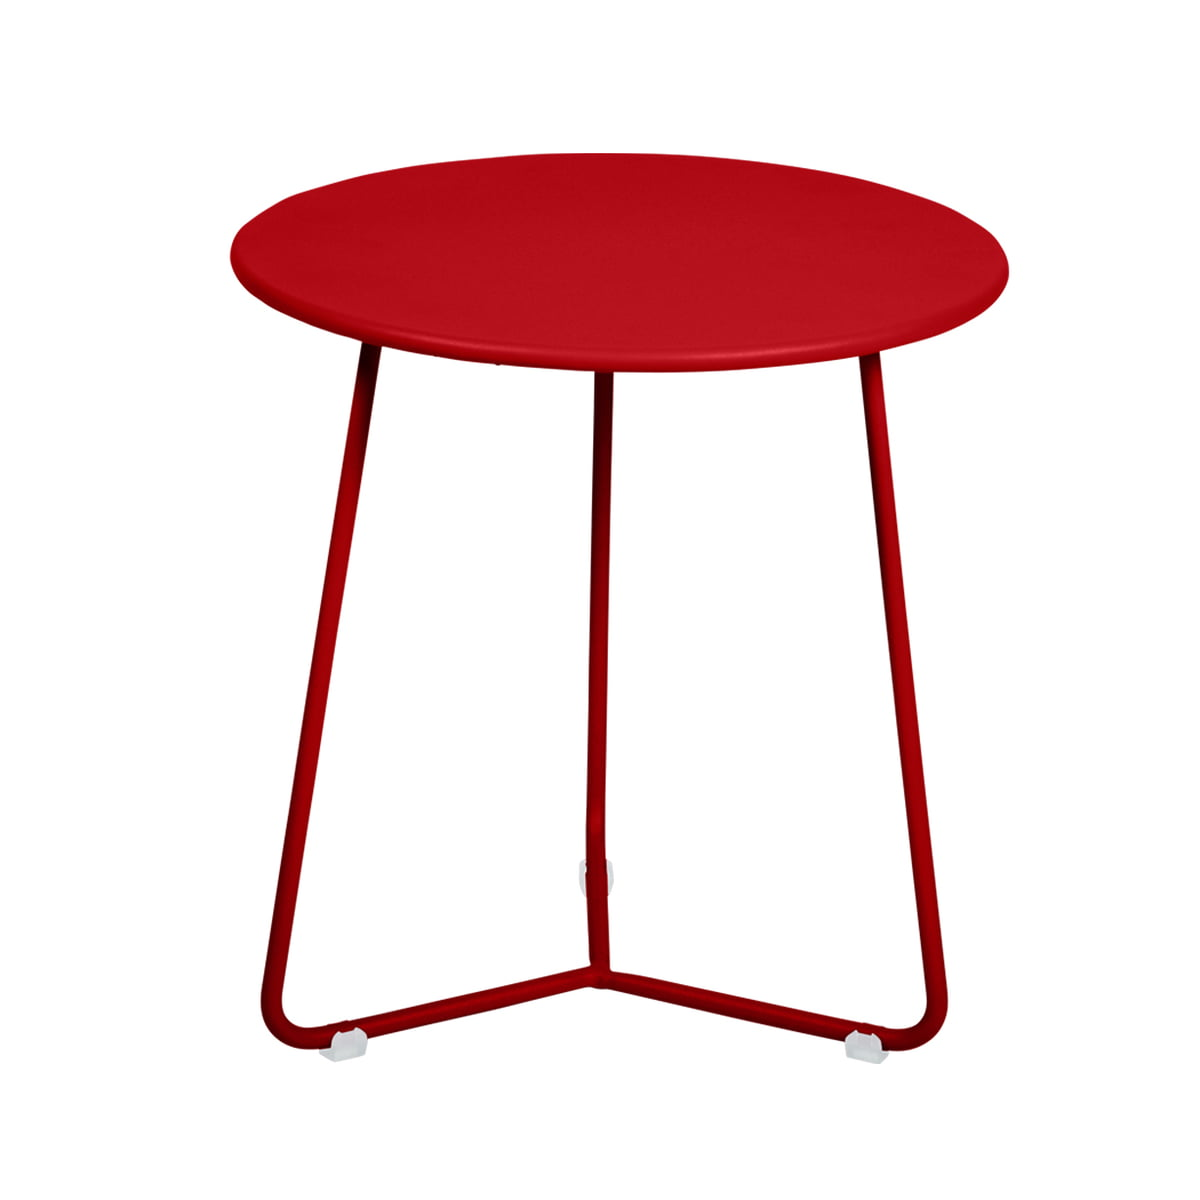 The fermob cocotte side table stool ø 34 cm x h 36 cm